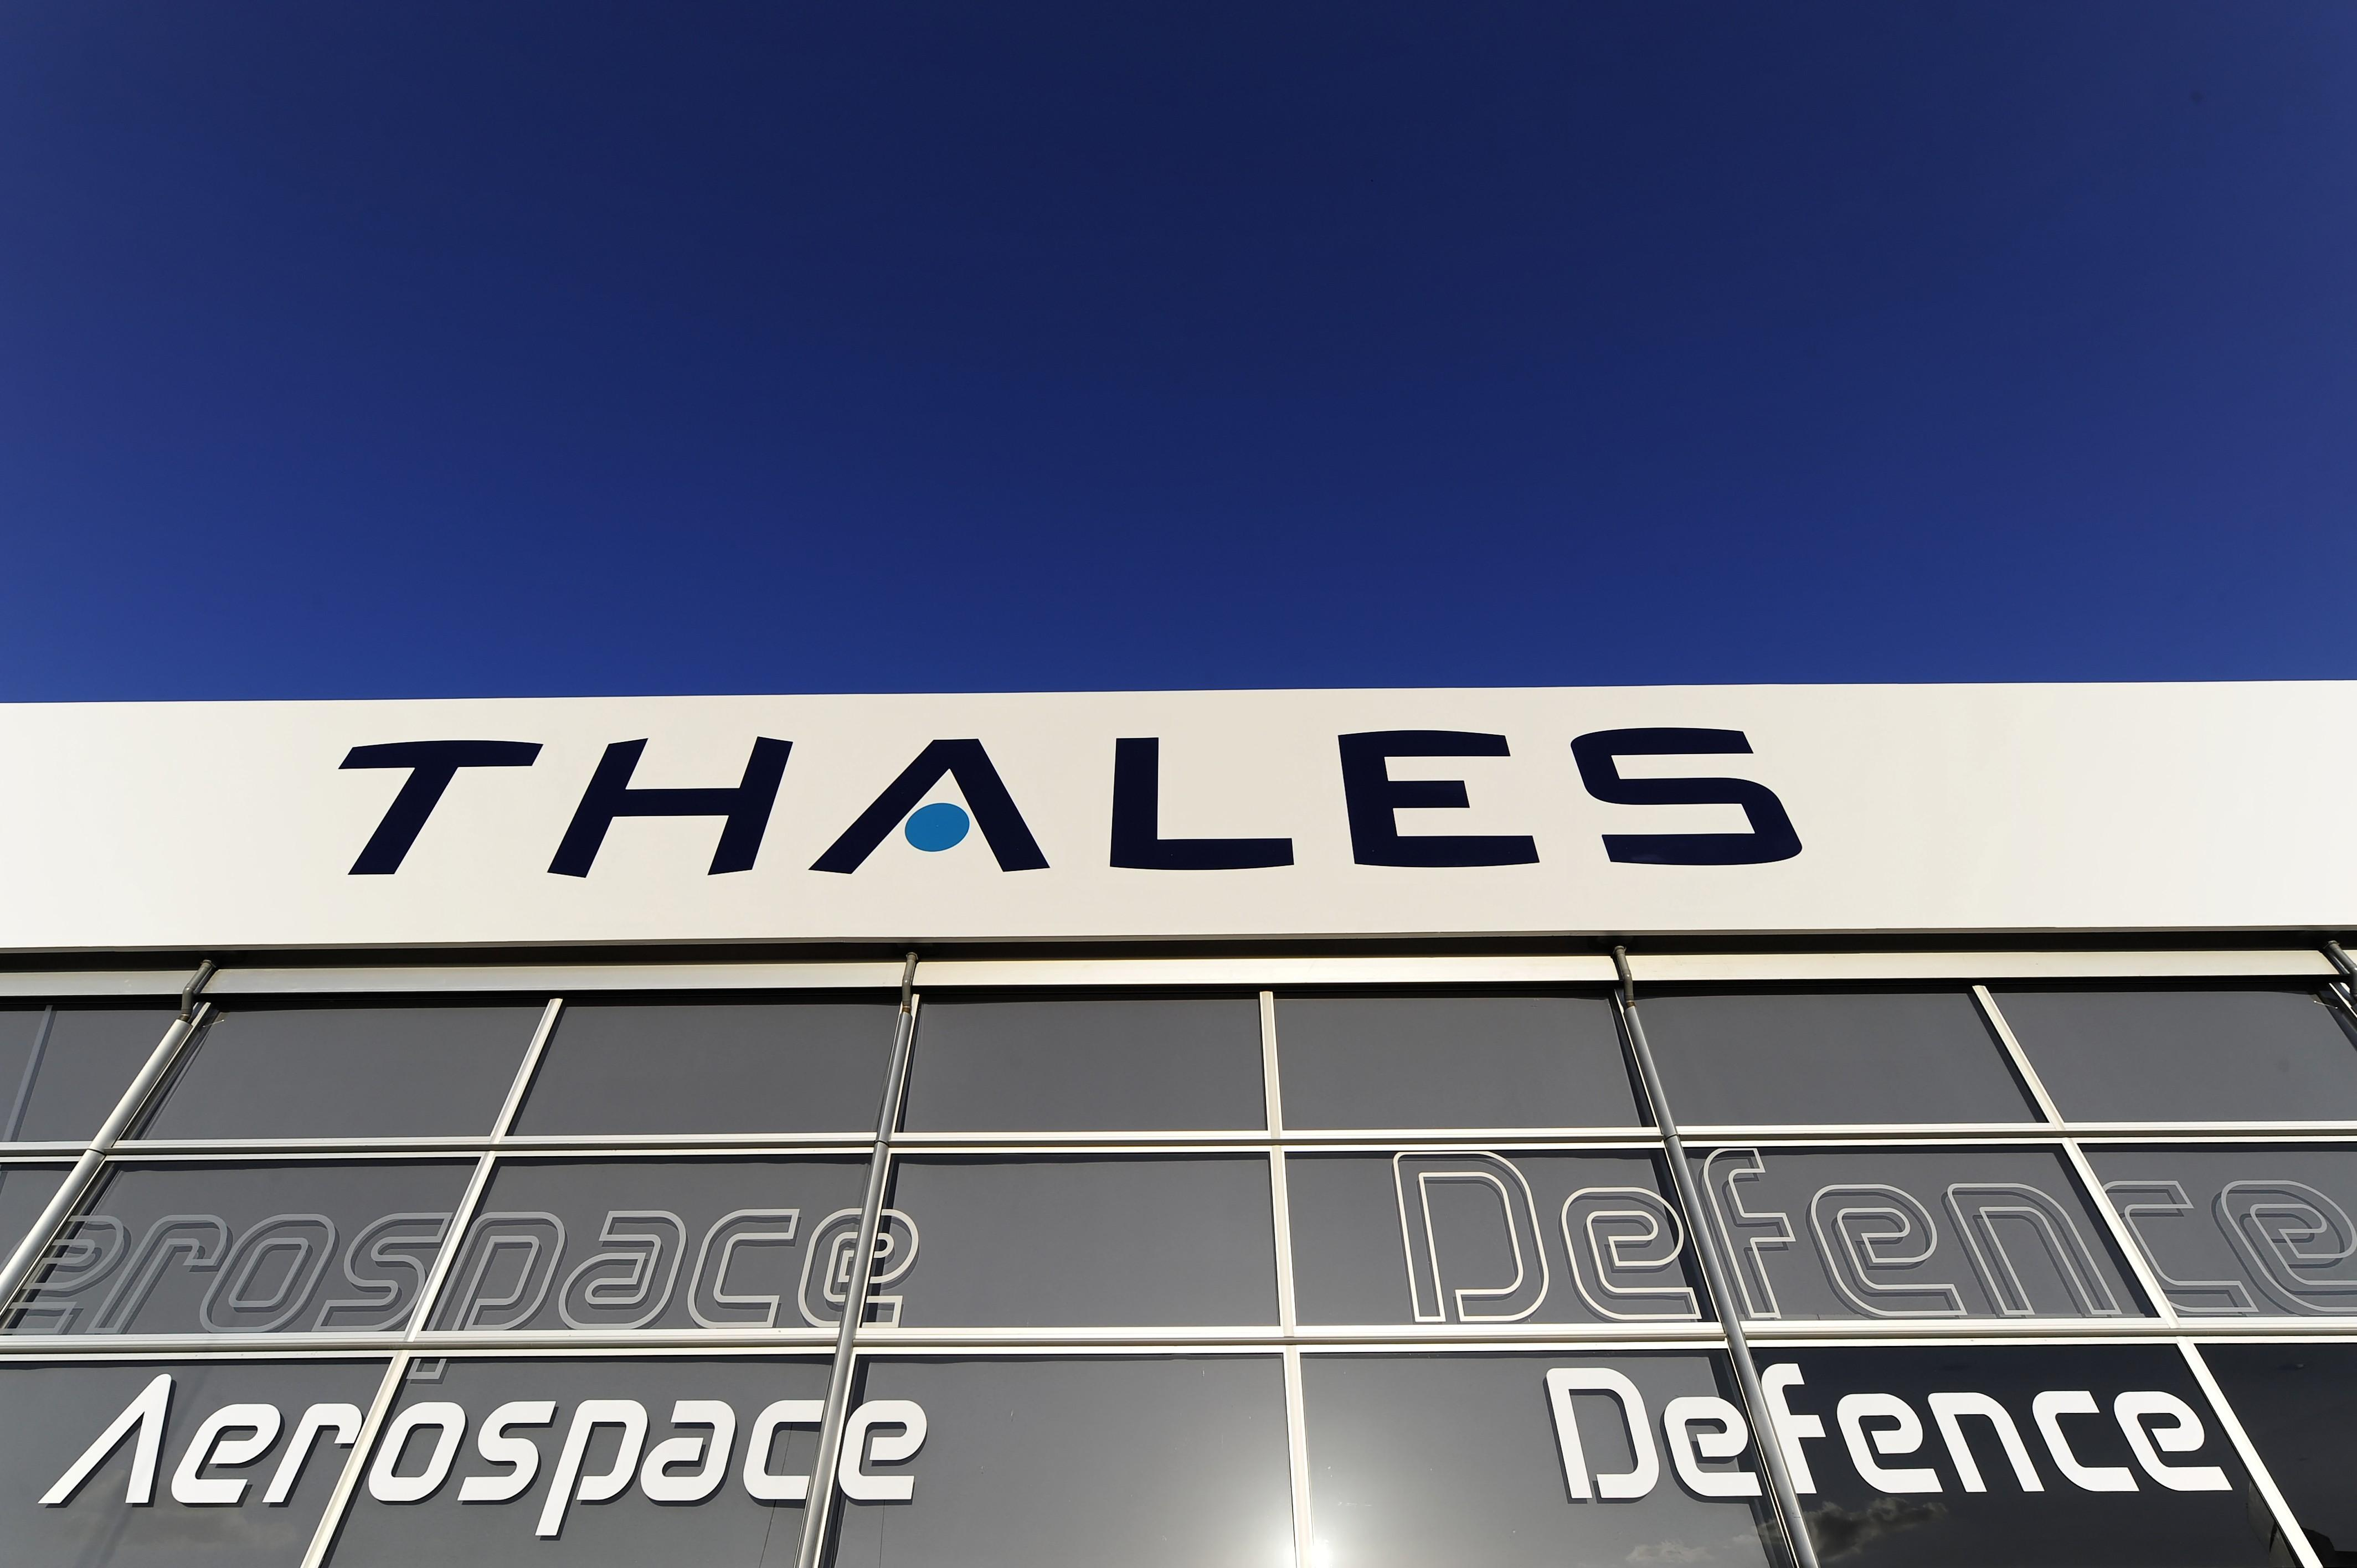 Thales generic show - Thalesgroup